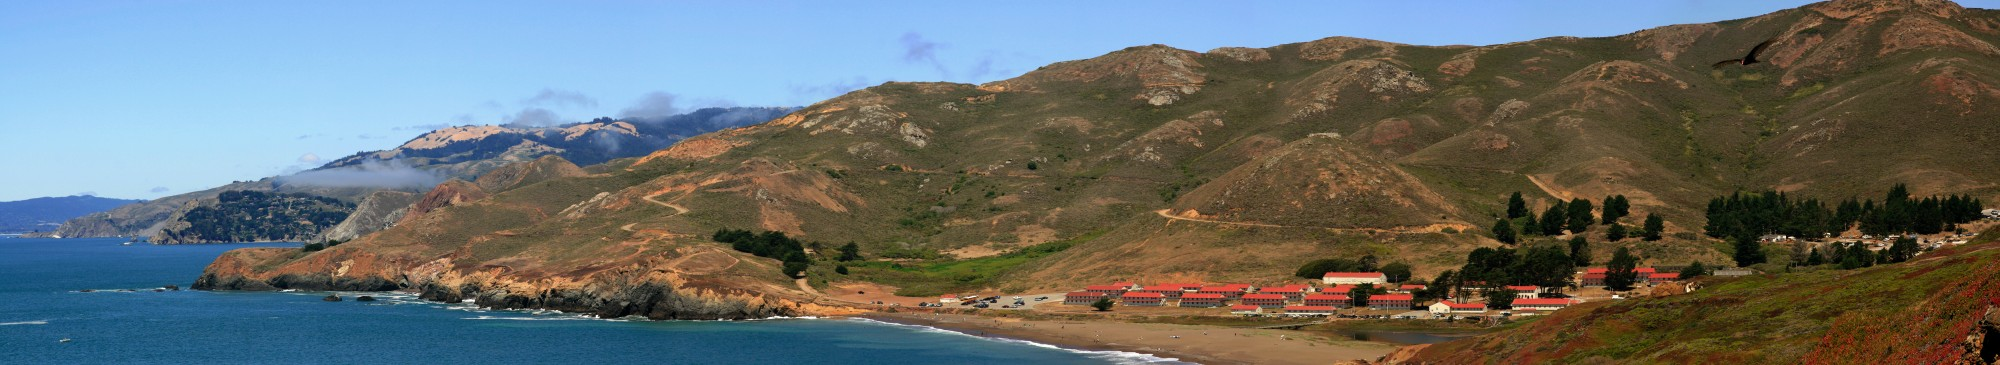 Marin Headlands with Rodeo Beach